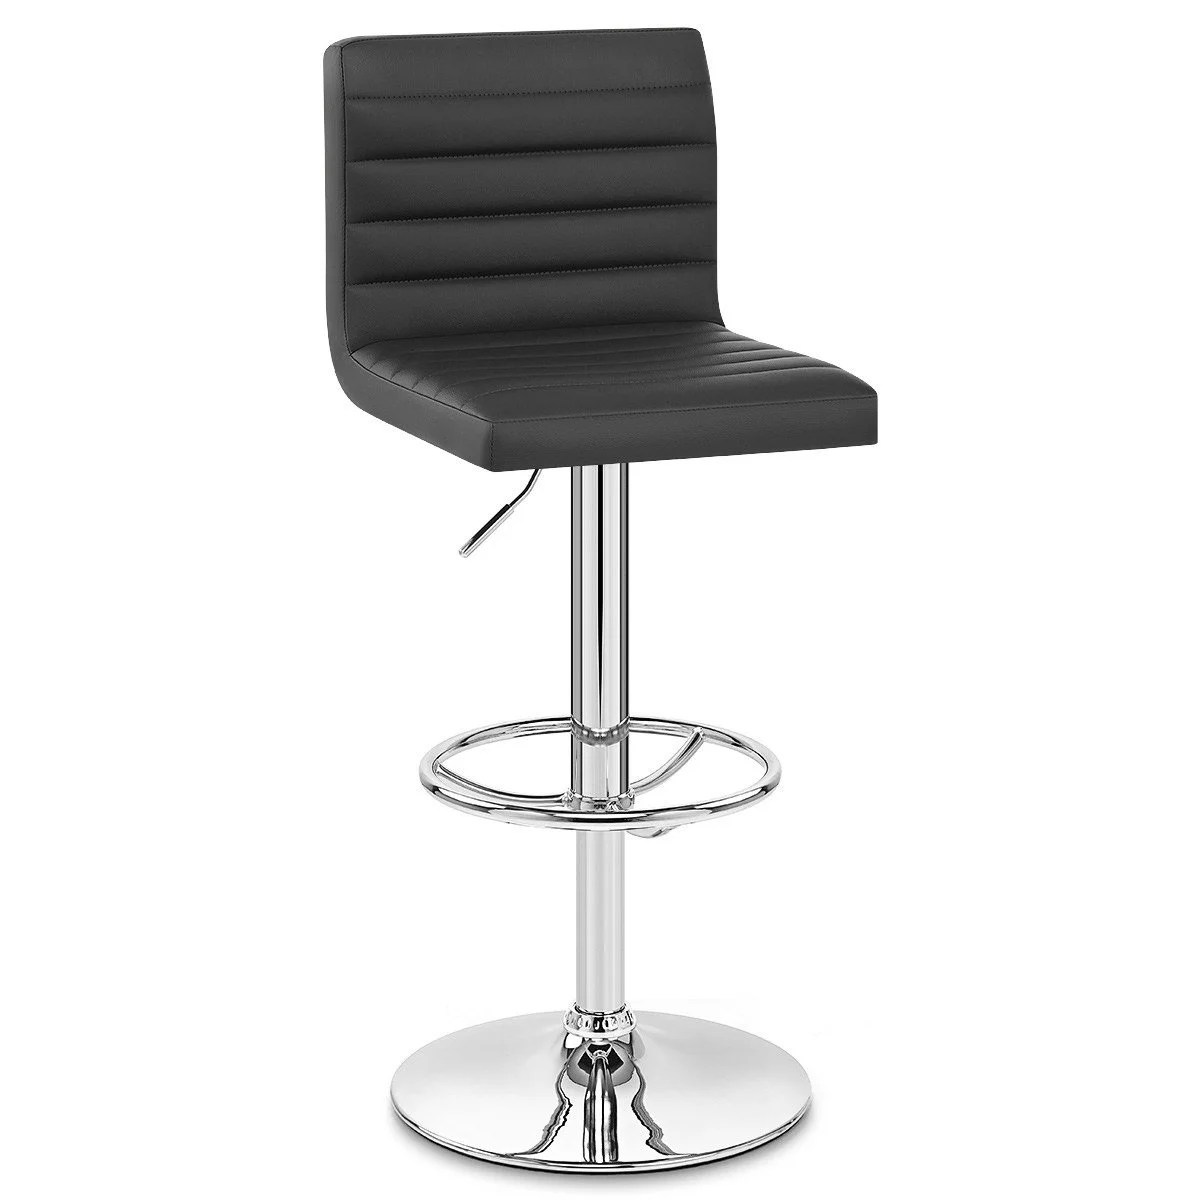 Tabourets De Bar Alu Tabouret De Bar Design Simili Cuir Noir Mint